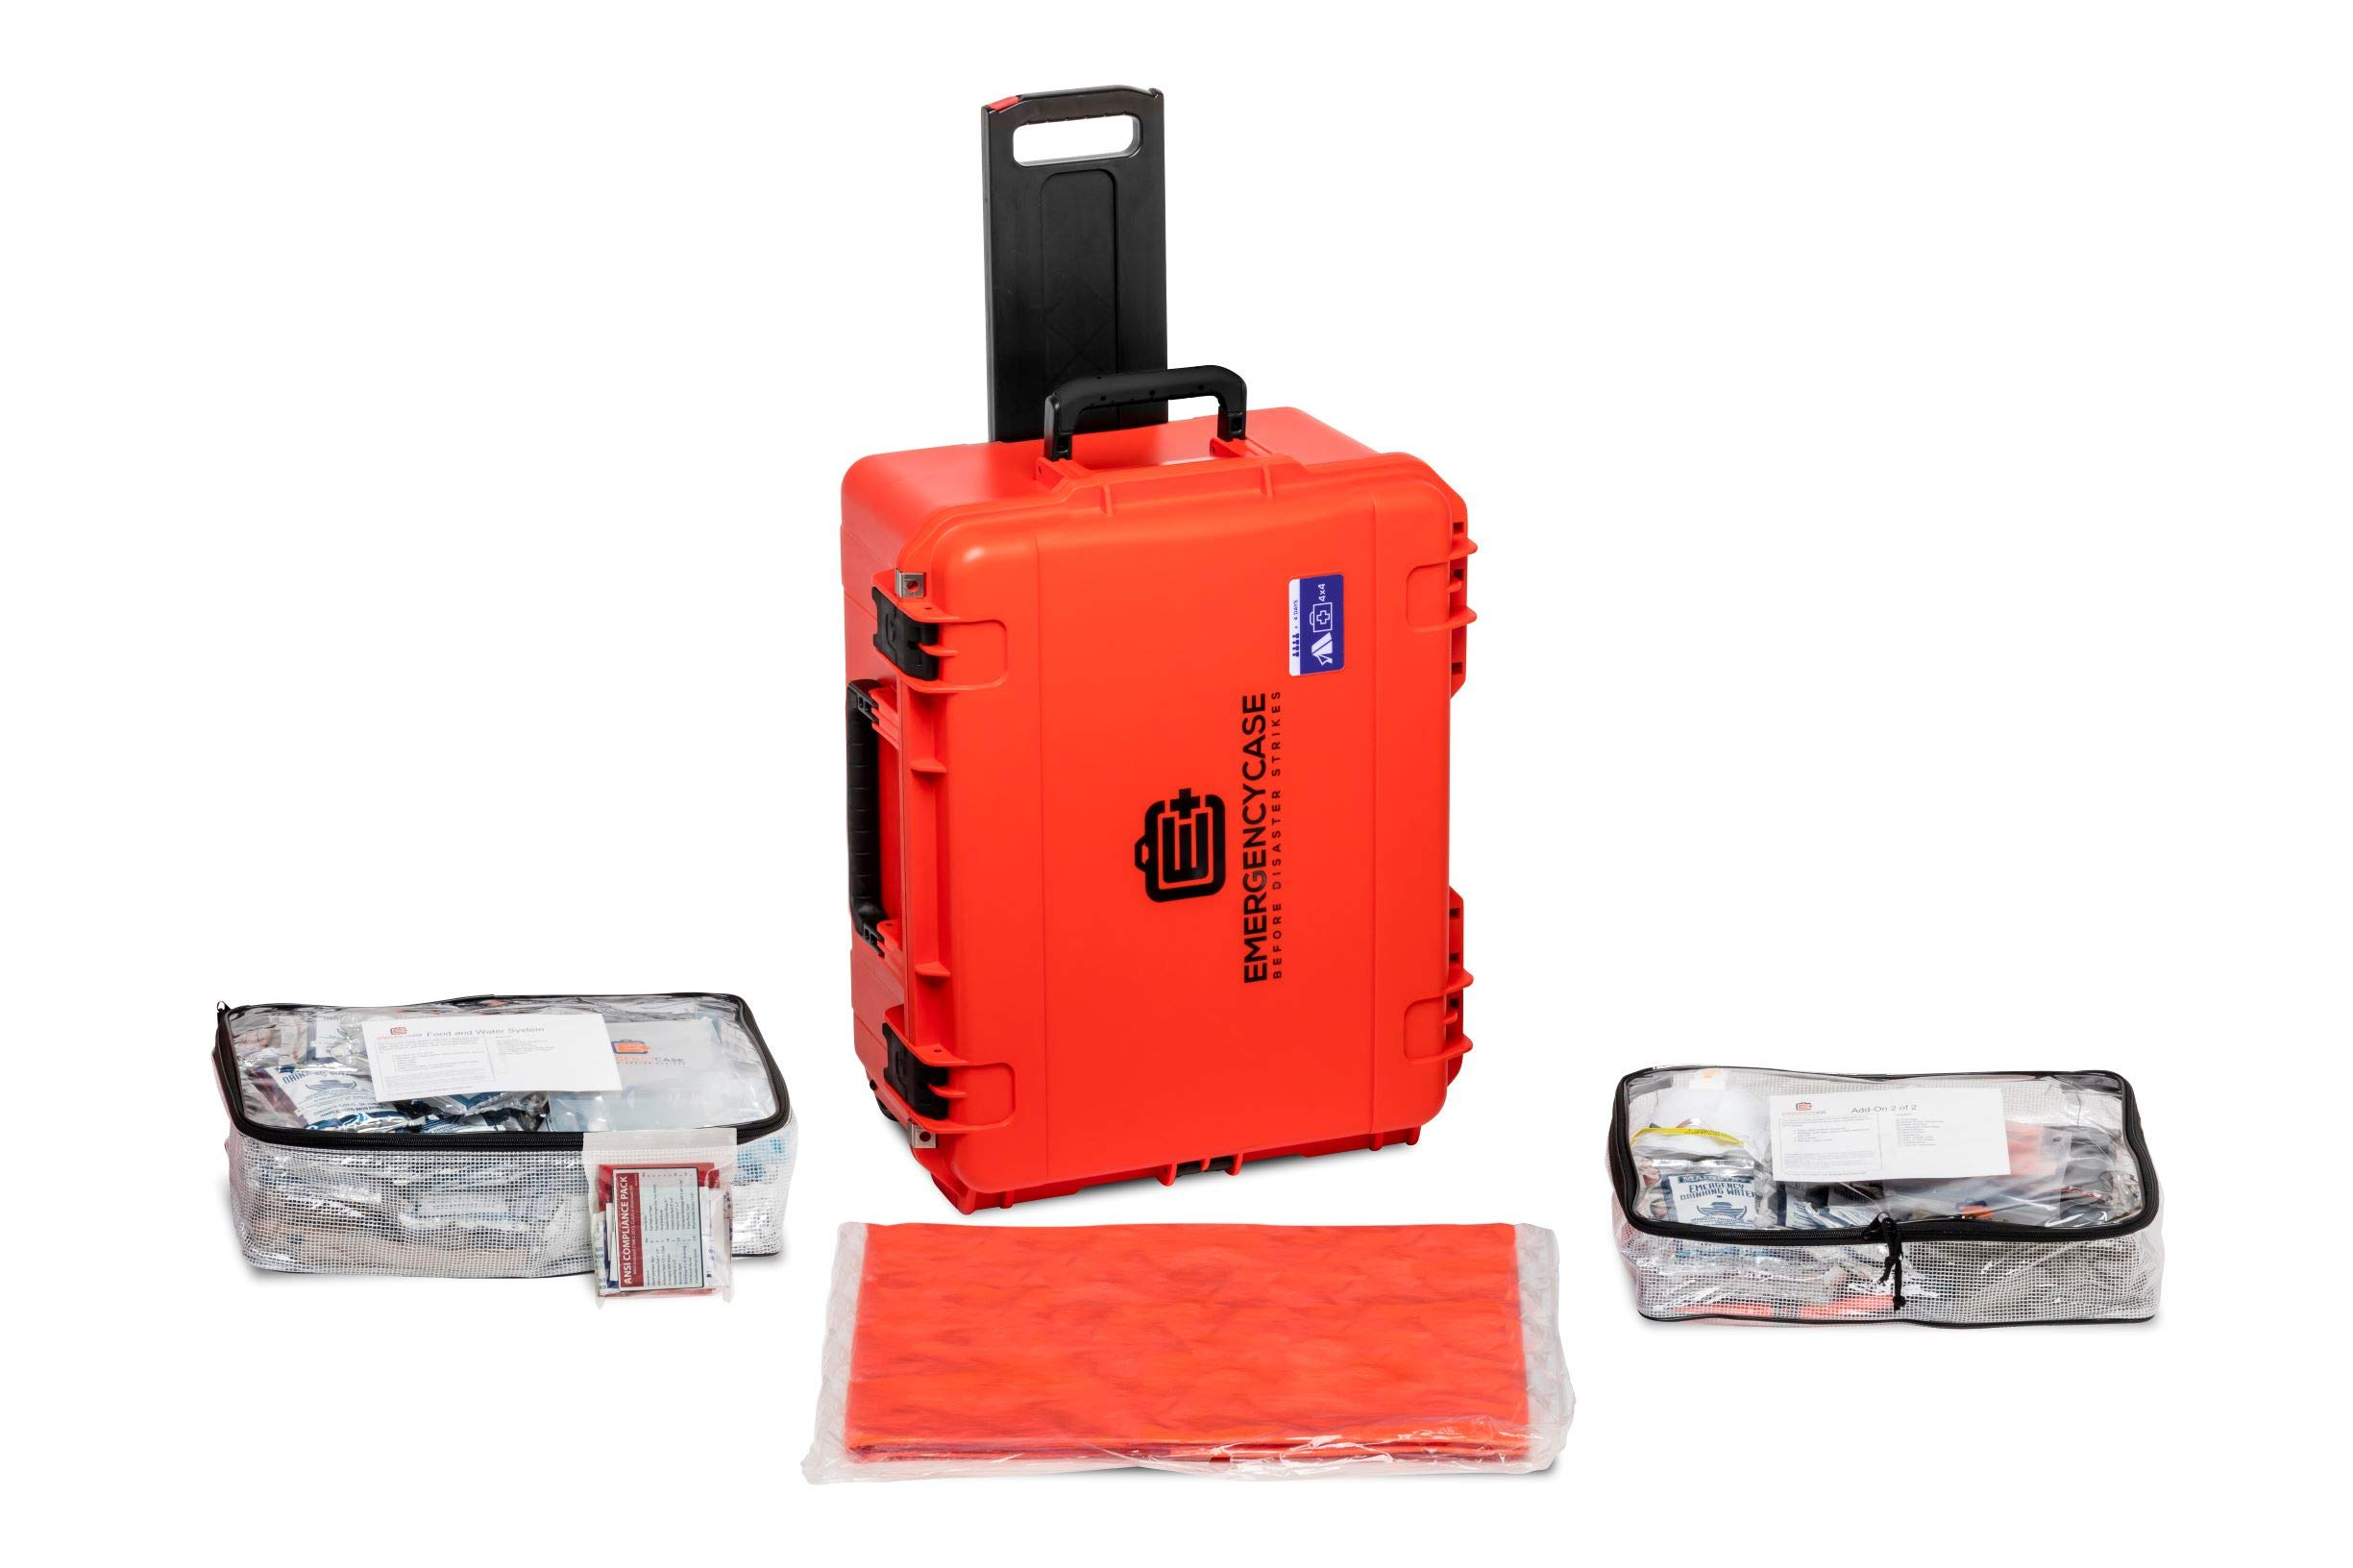 Emergency Case - Family Survival Kit - 4 Person 4 Days for Earthquakes, Hurricanes, Floods, Tornadoes, Wildfires